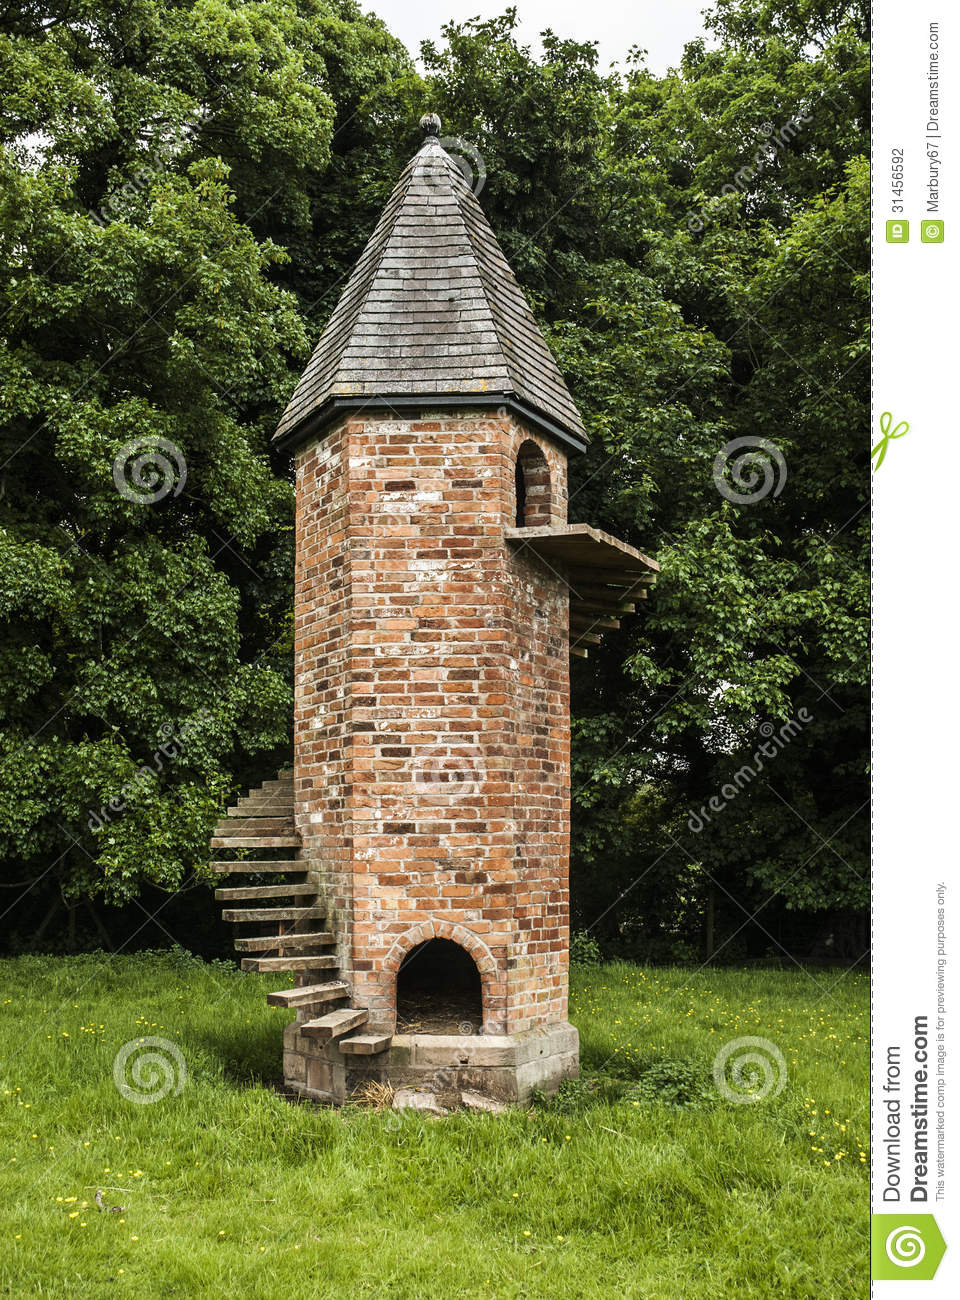 An unusual brick folly built for pet goats with outside staircase